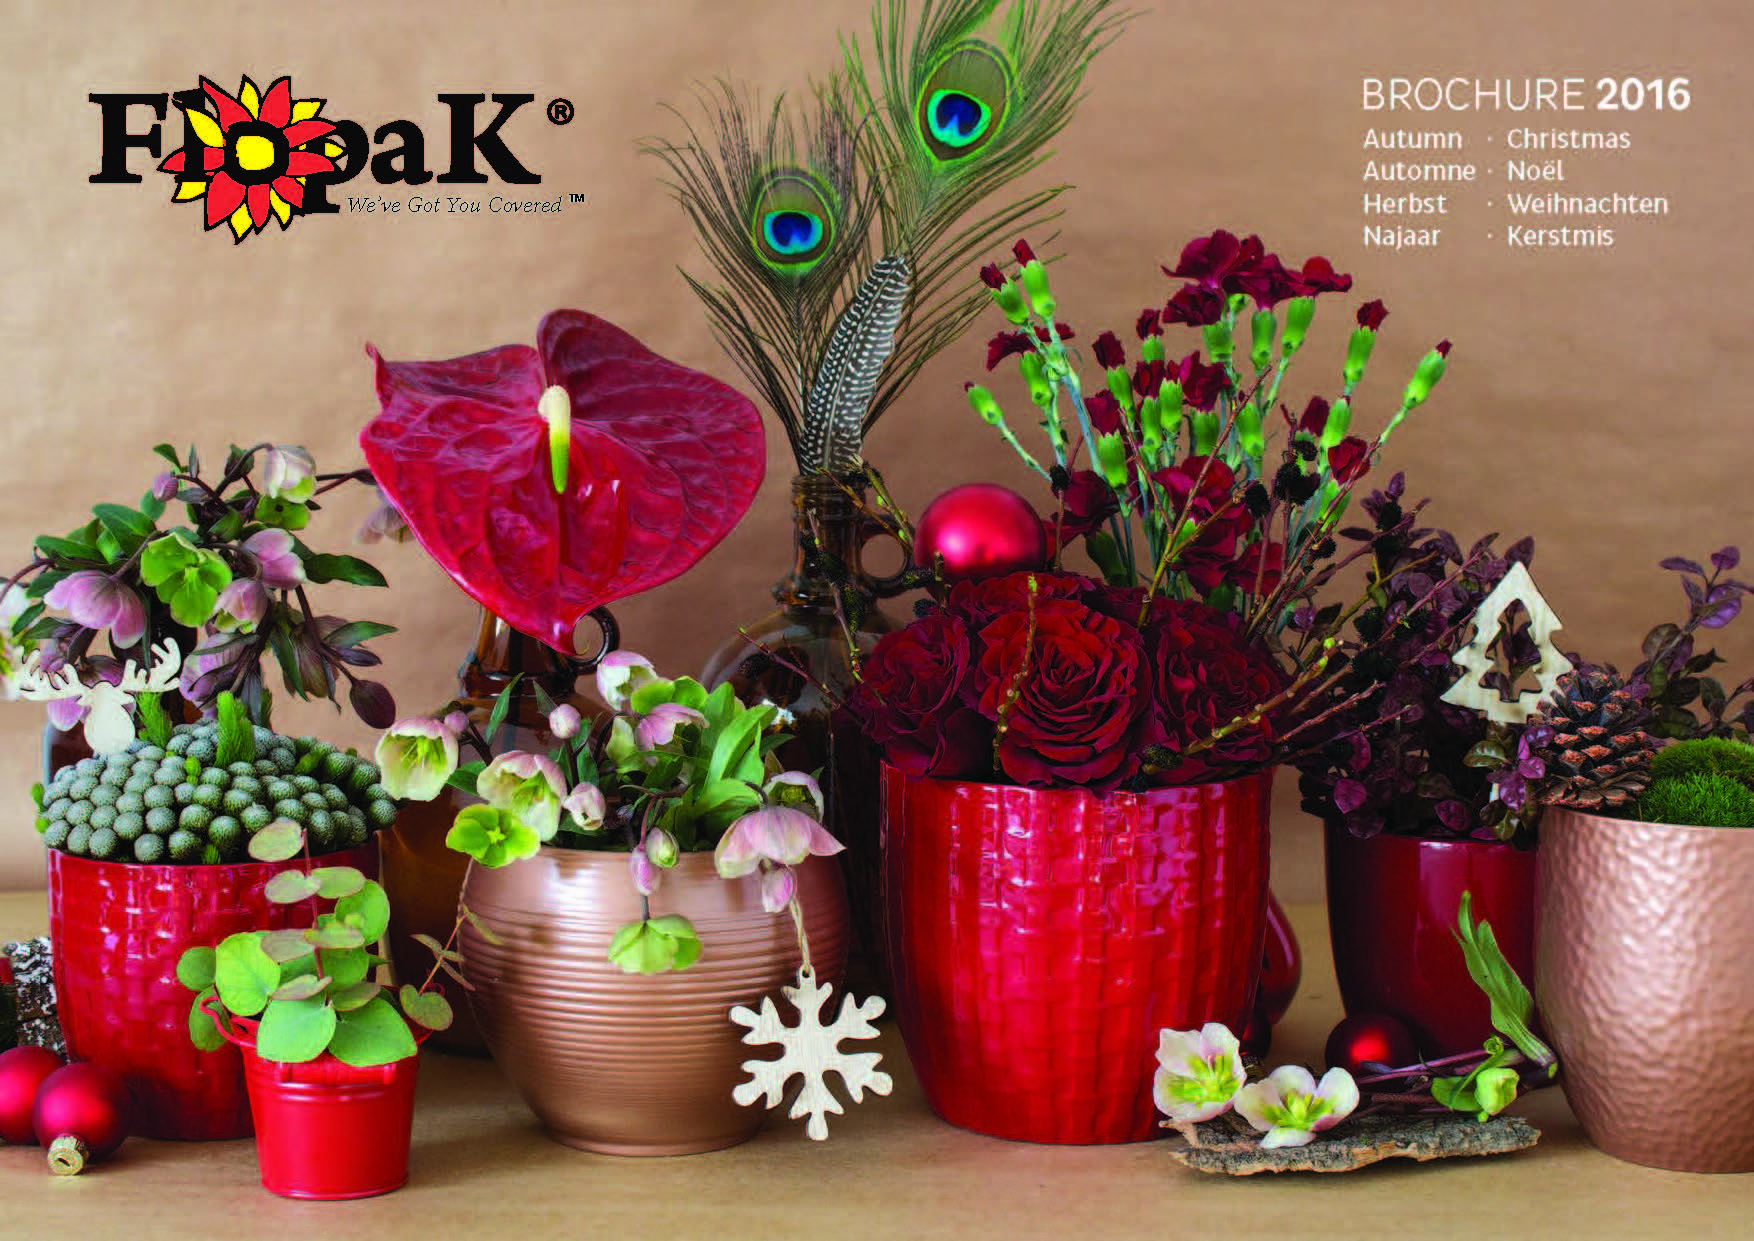 Flopak® New 2016 Autumn / Holiday Catalog Now Available